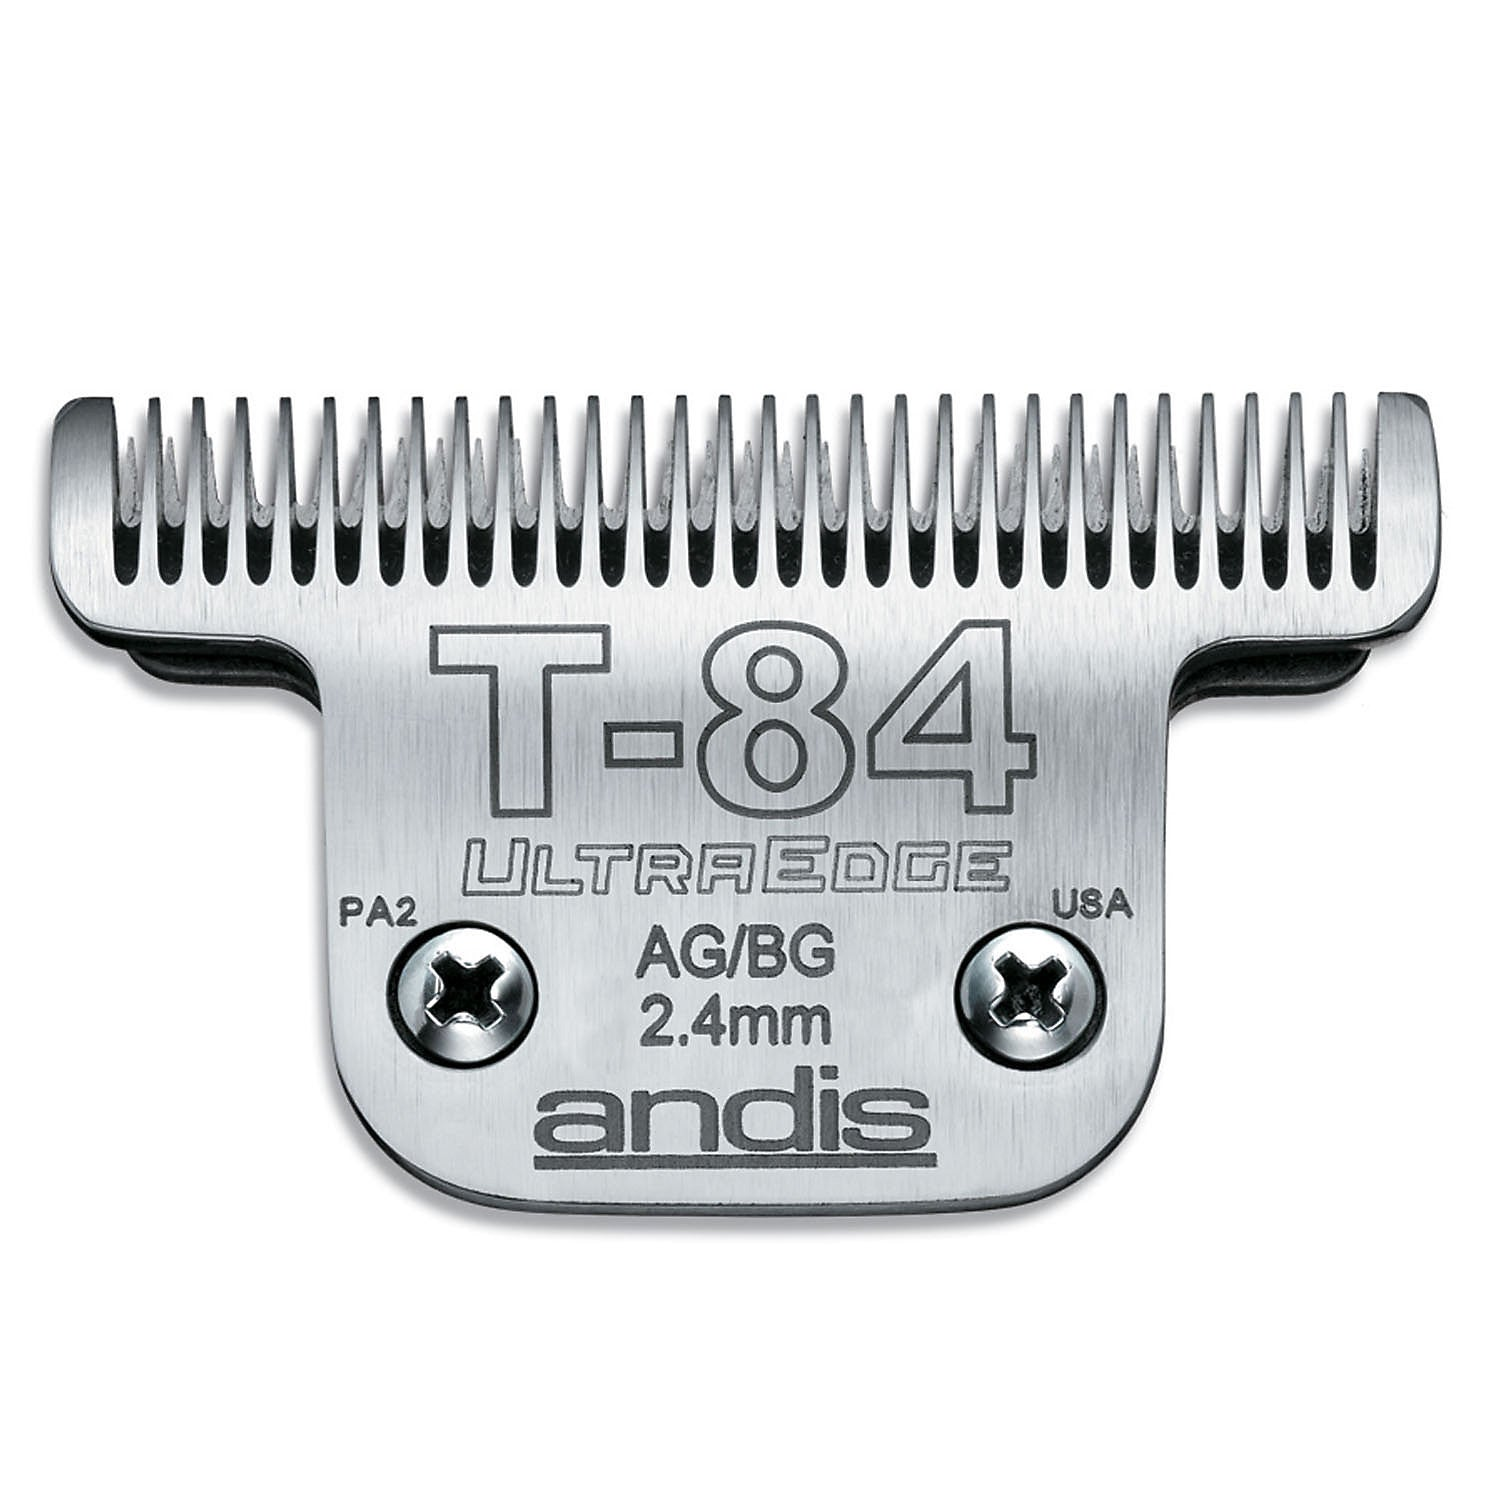 Andis Ultraedge T-84 Extra Wide Blade